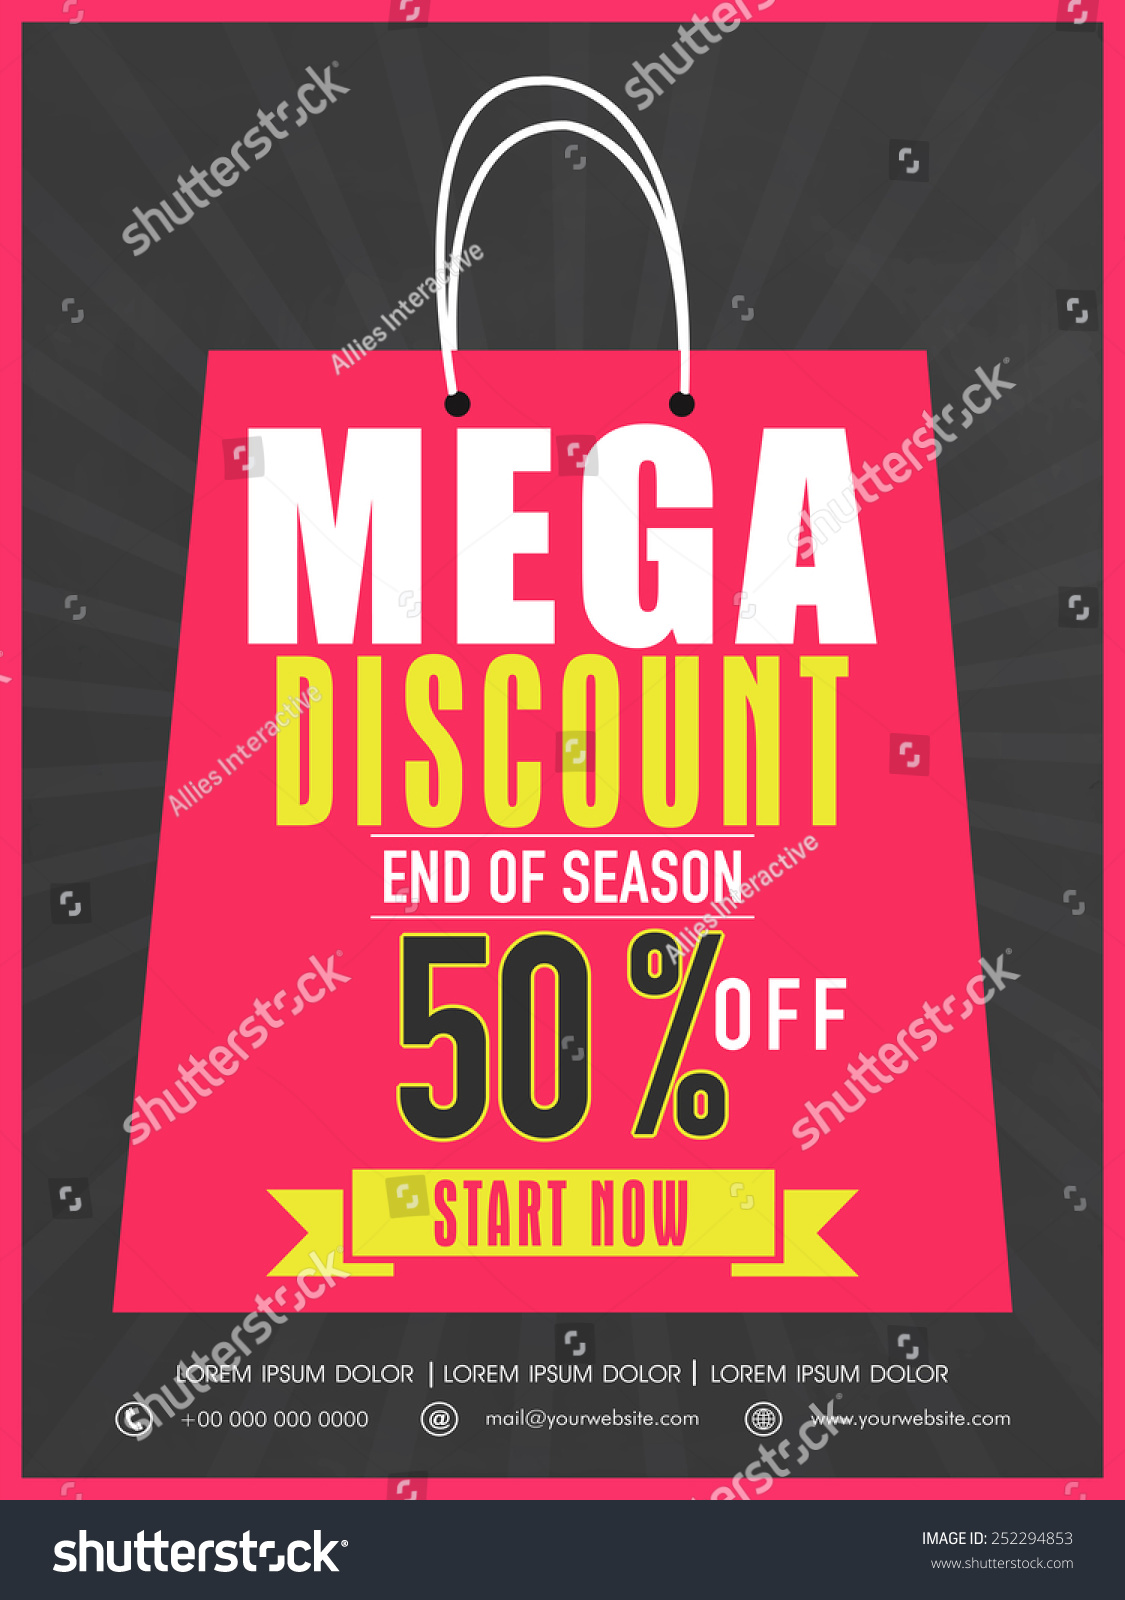 end season flyer banner template stock vector  end of season flyer banner or template design mega discount